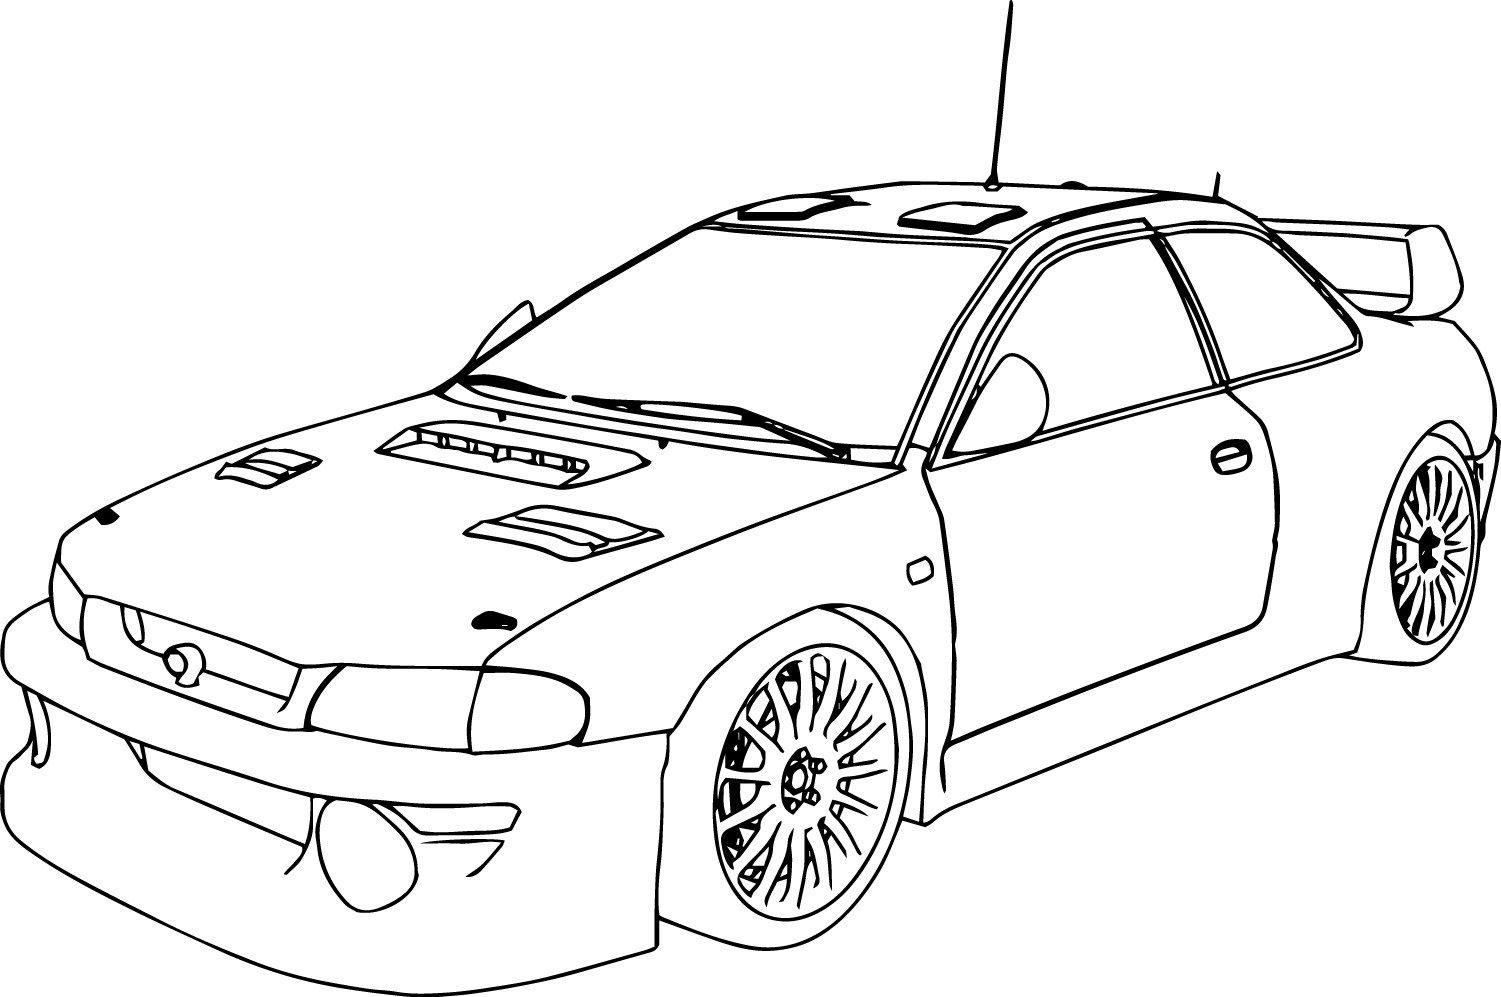 coloring picture of car car coloring pages best coloring pages for kids of coloring picture car